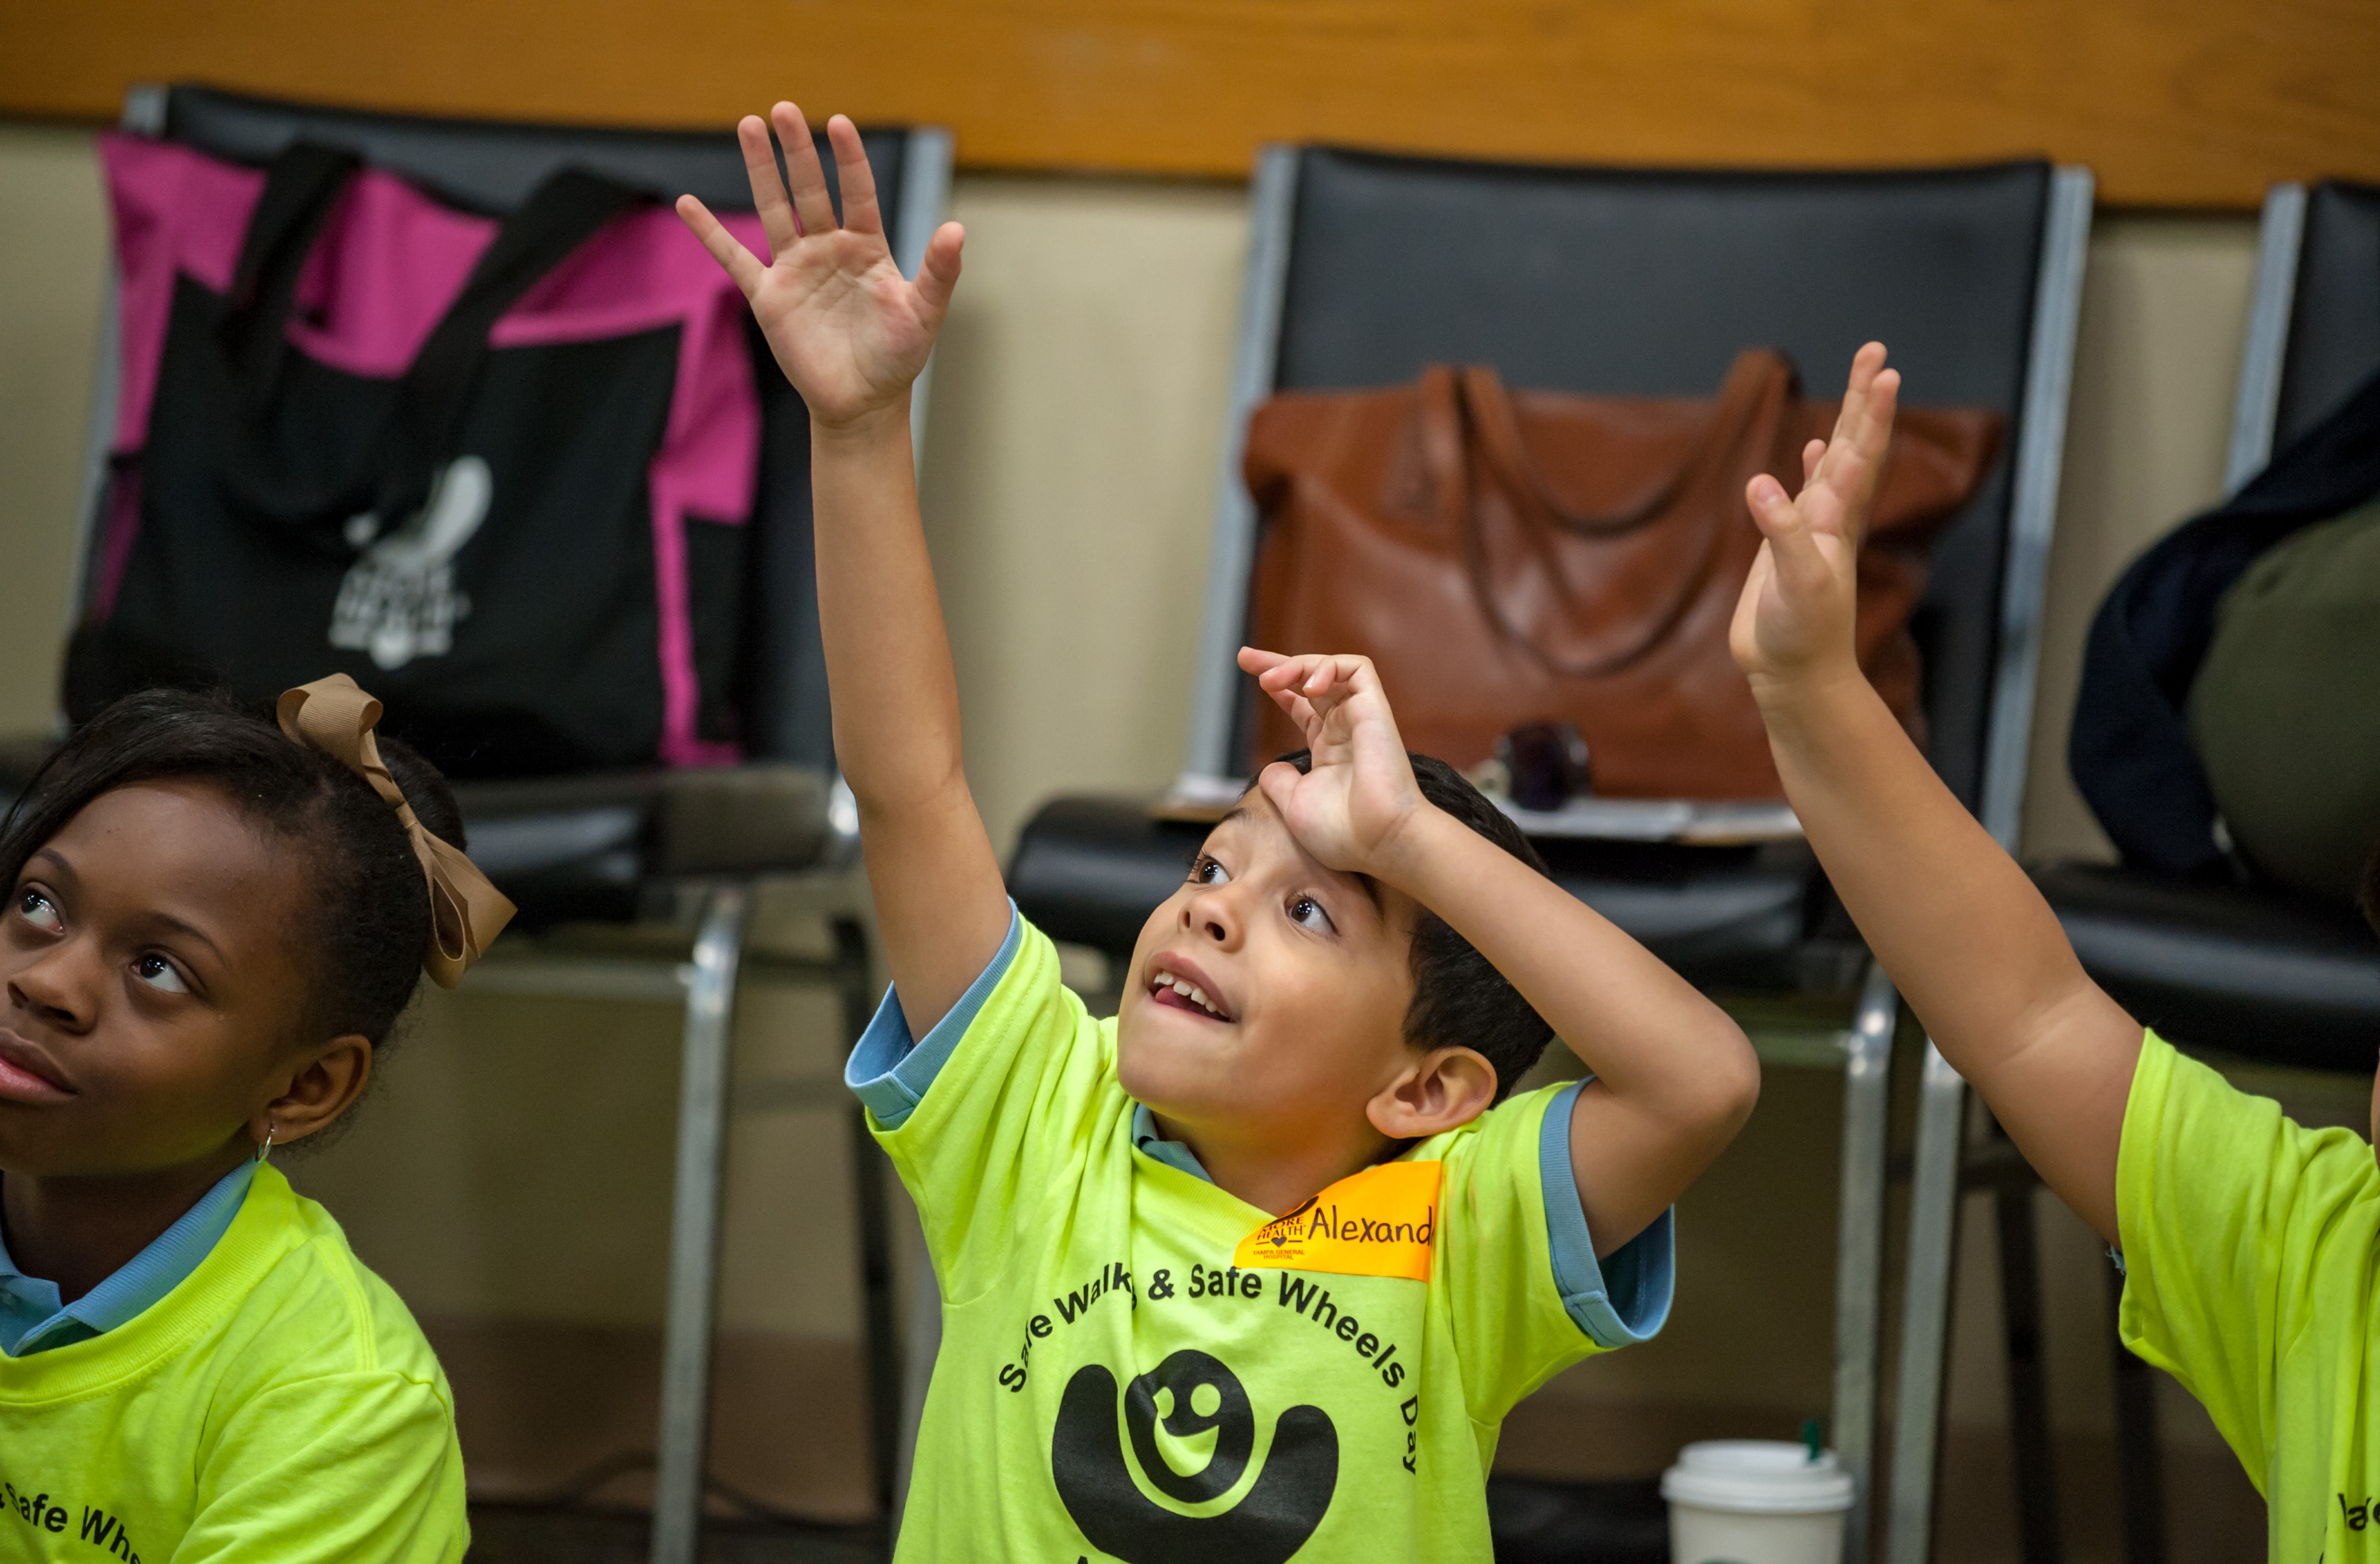 Group of kids raising their hands